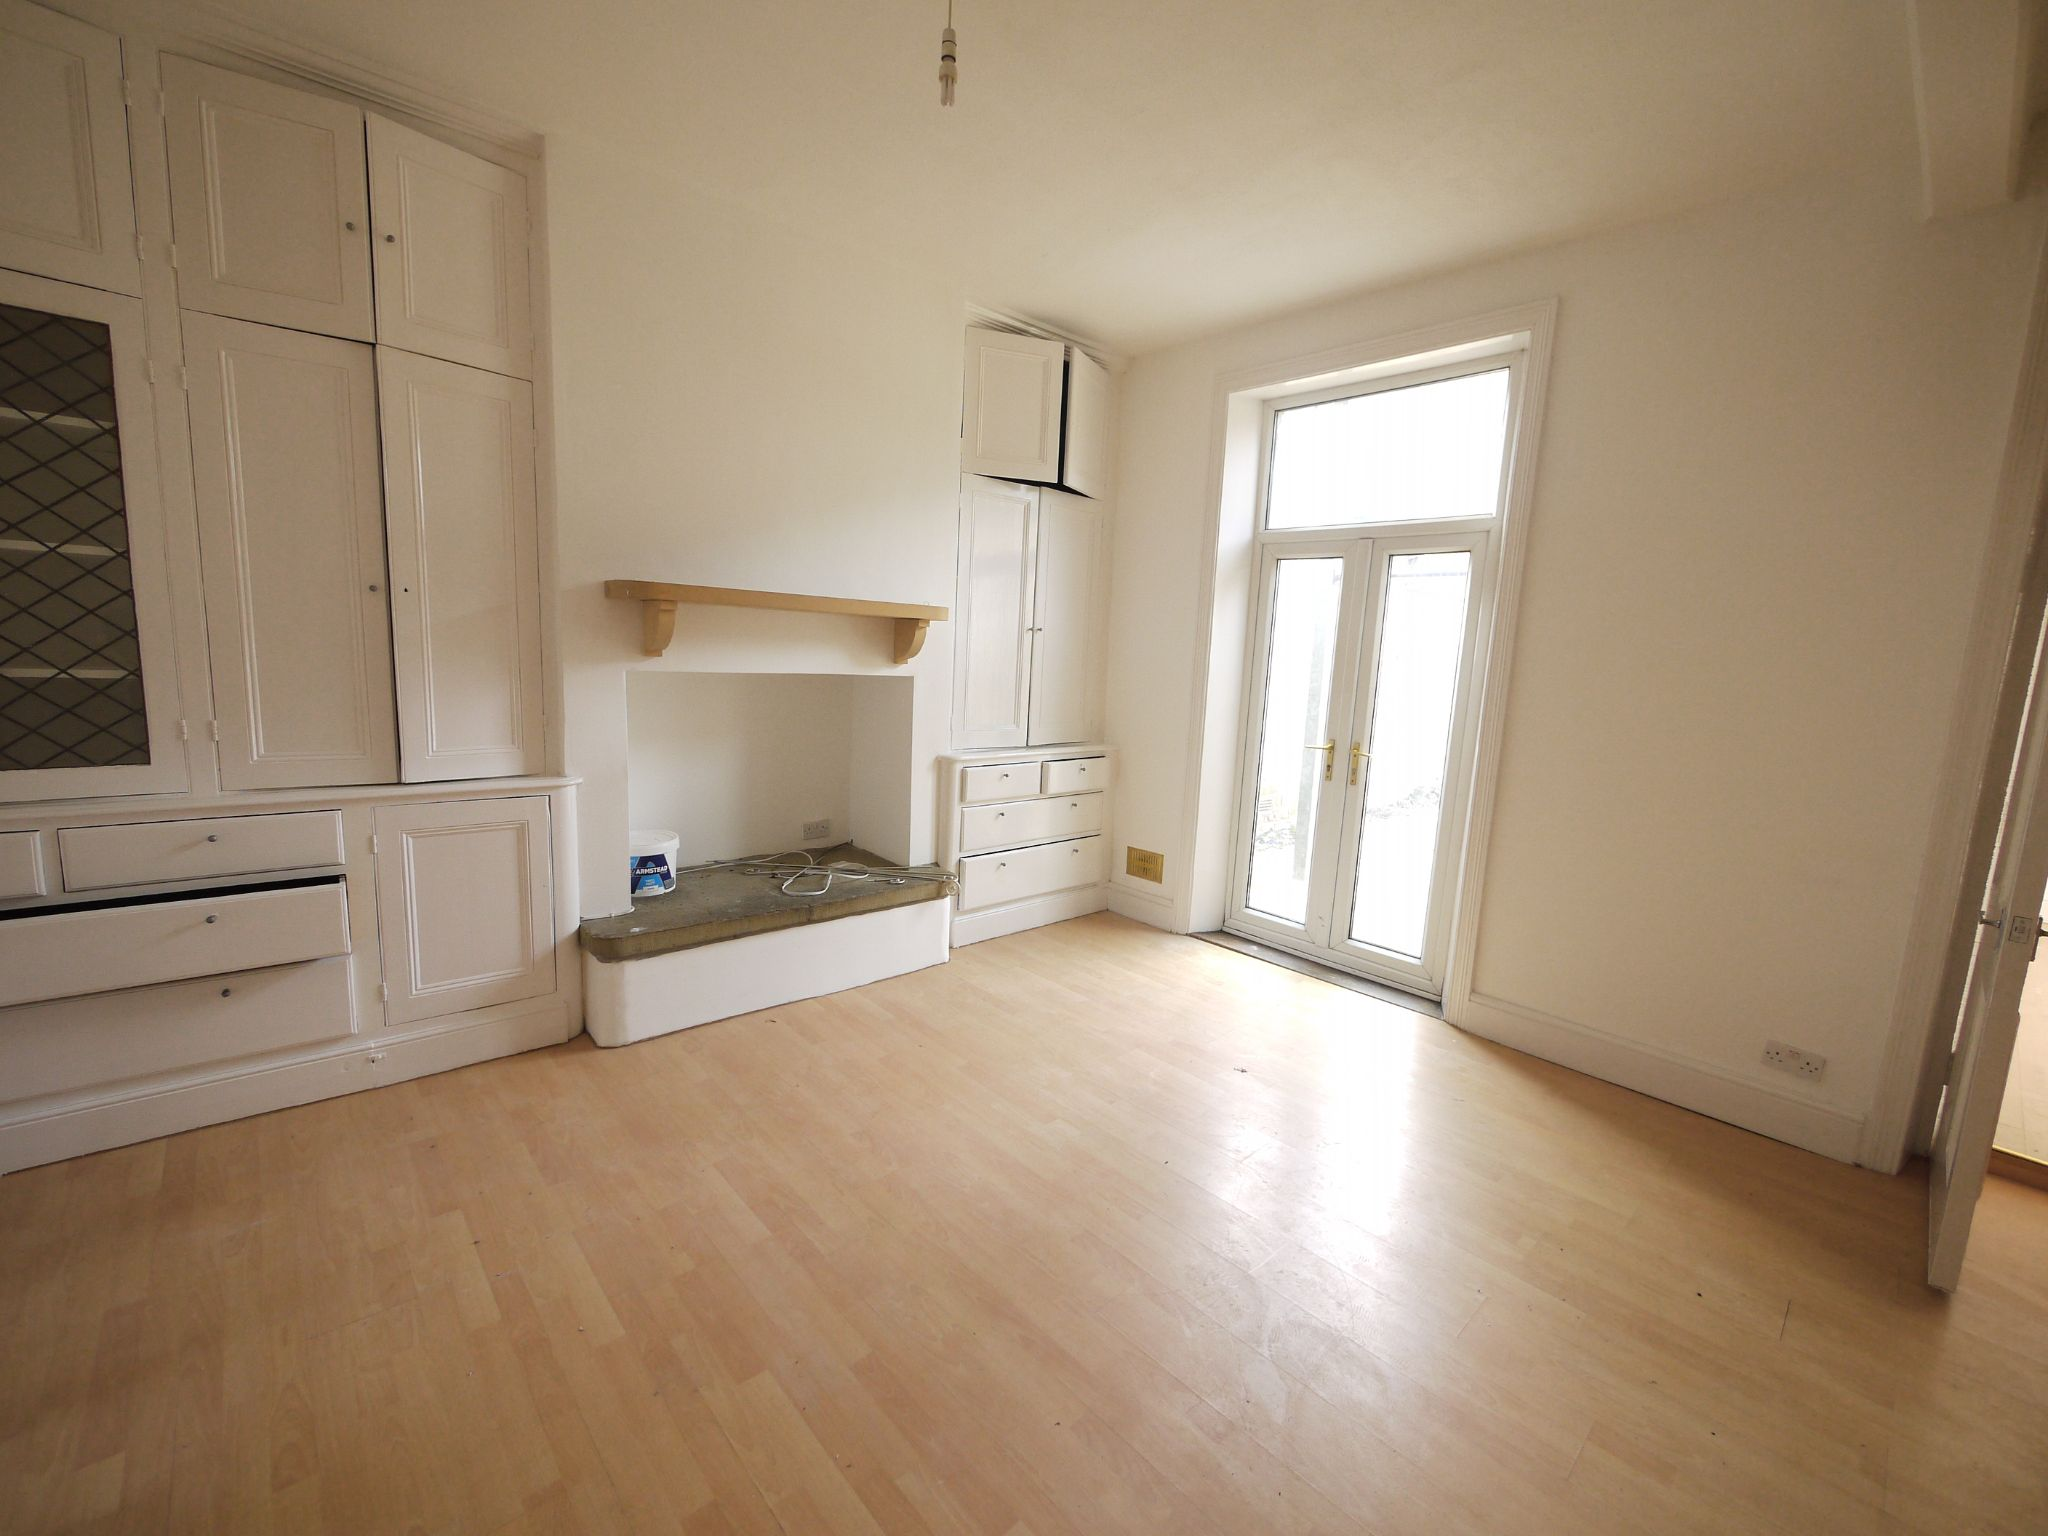 2 bedroom ground floor flat/apartment To Let in Halifax - Lounge.